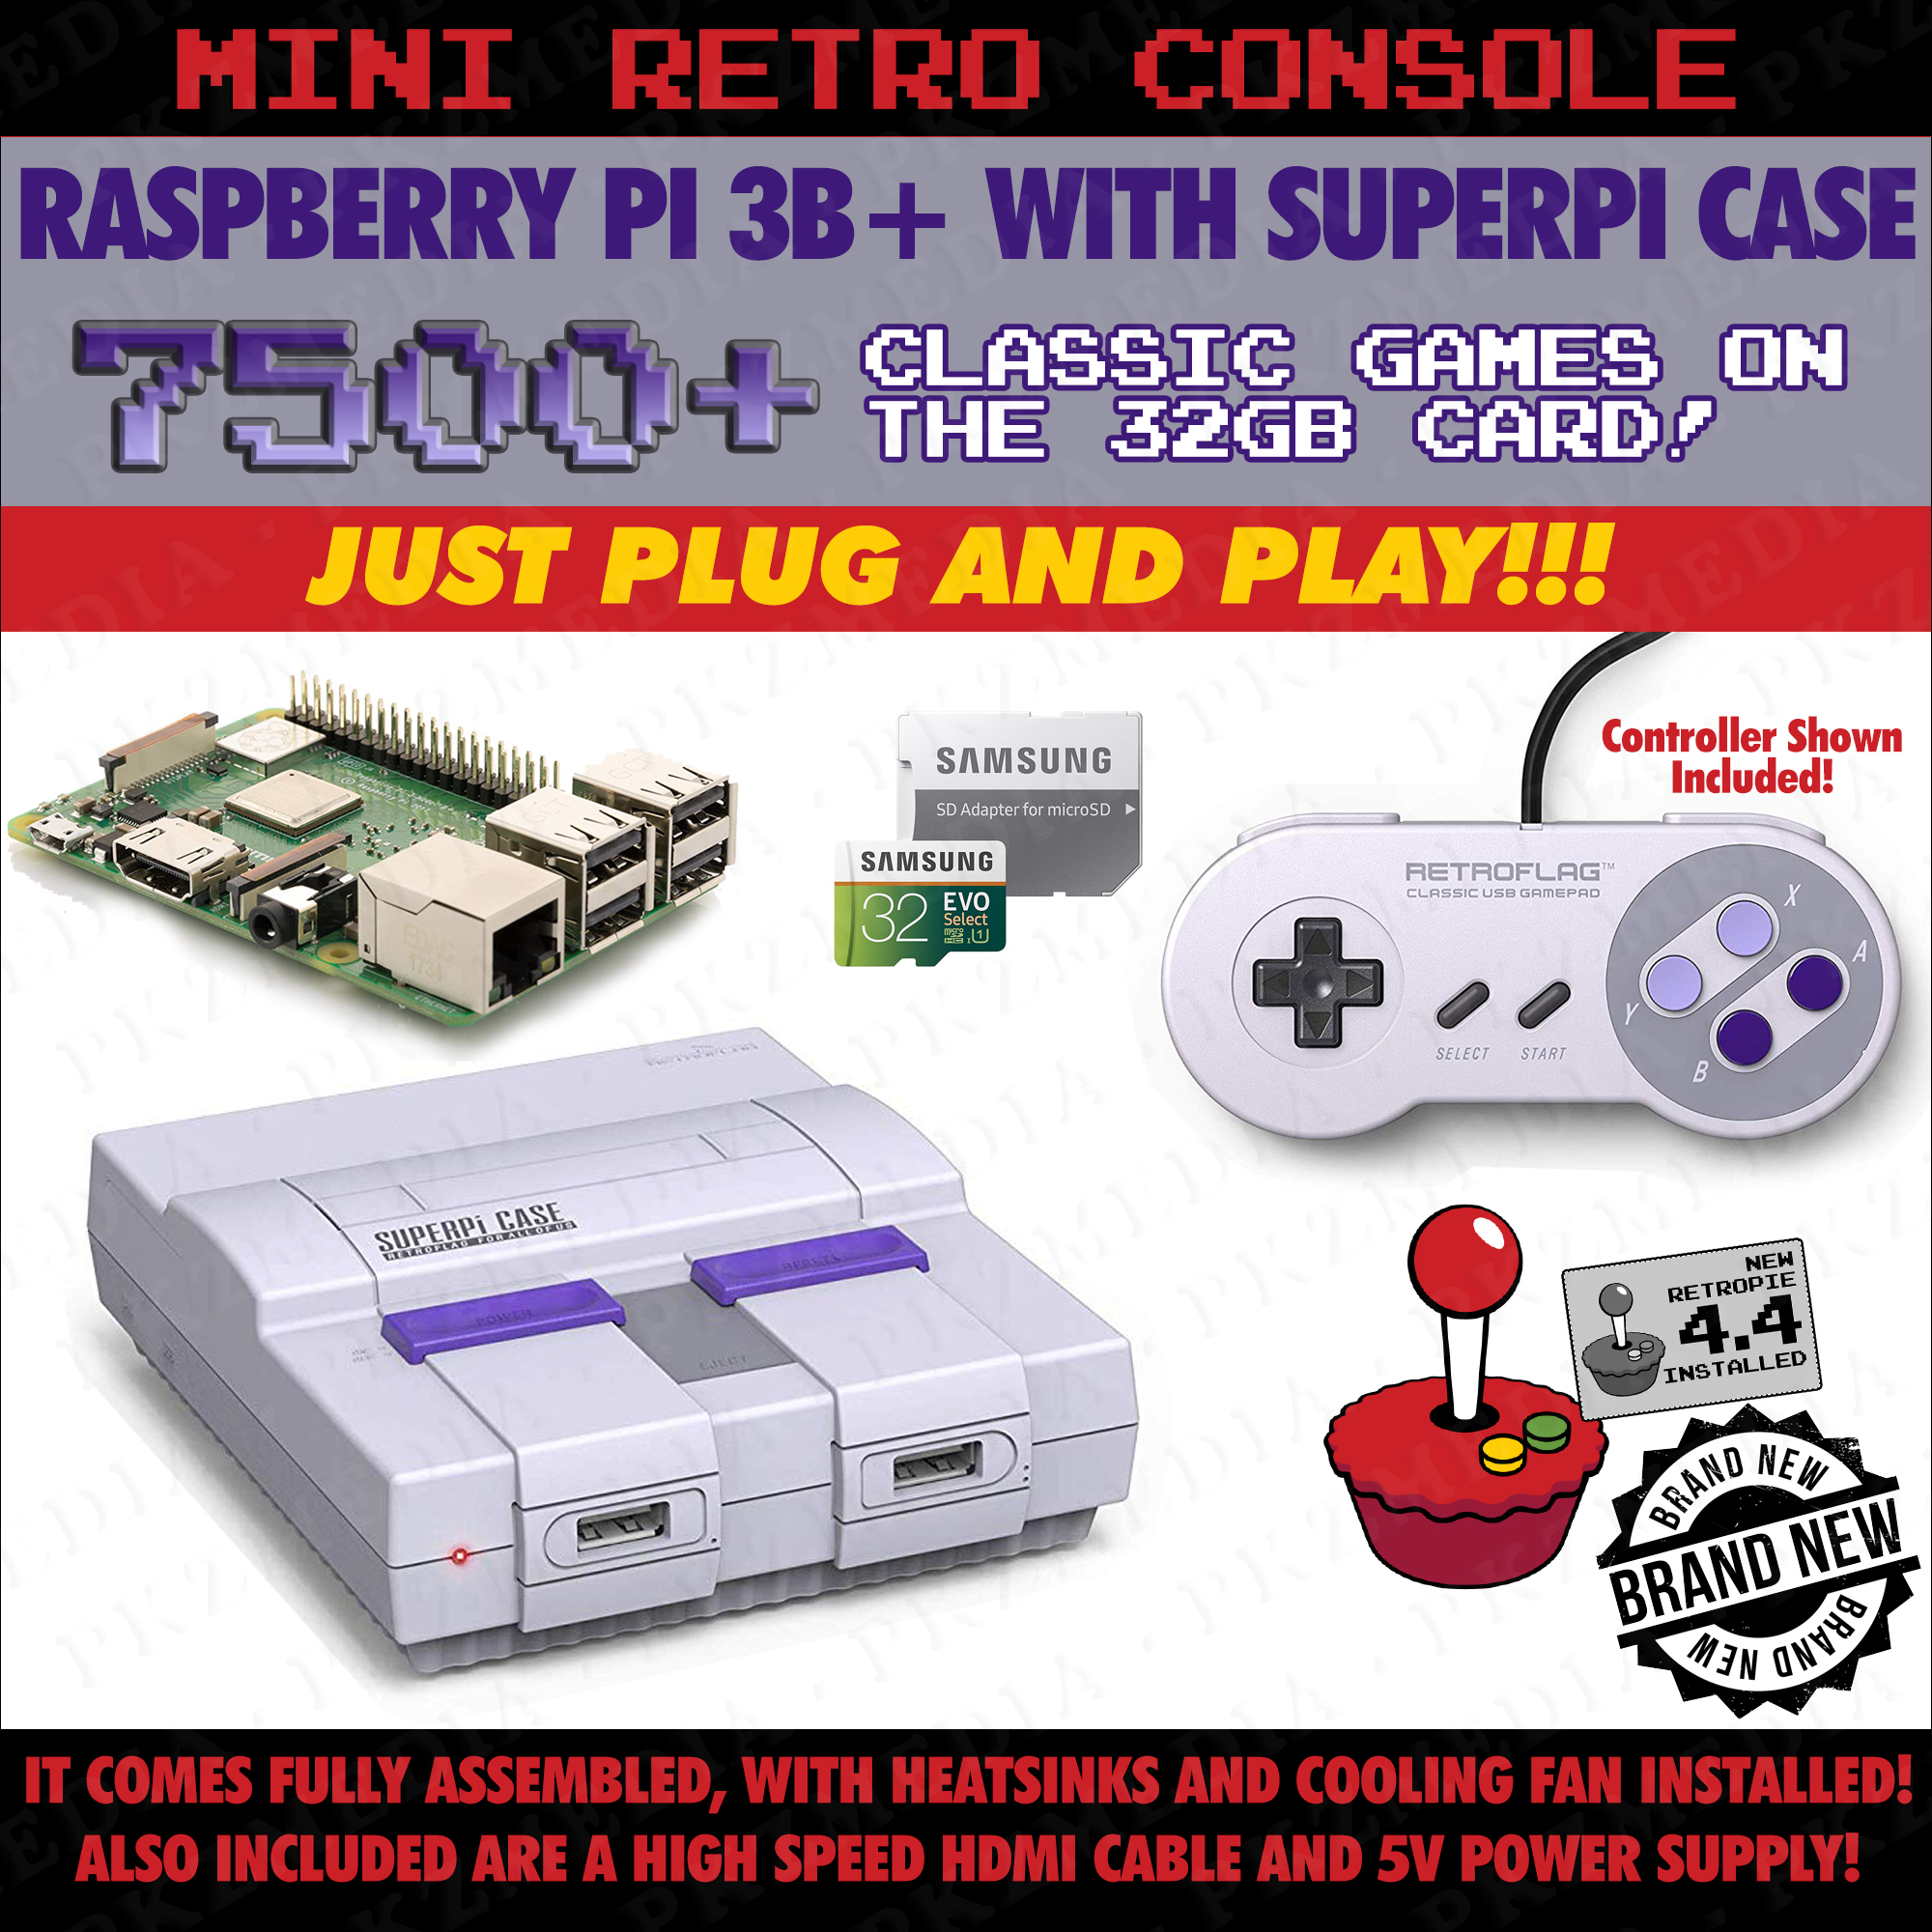 SuperNES/SNES Style Retropie Gaming Console Raspberry Pi 3B+ W/ 7,500 Games Preloaded